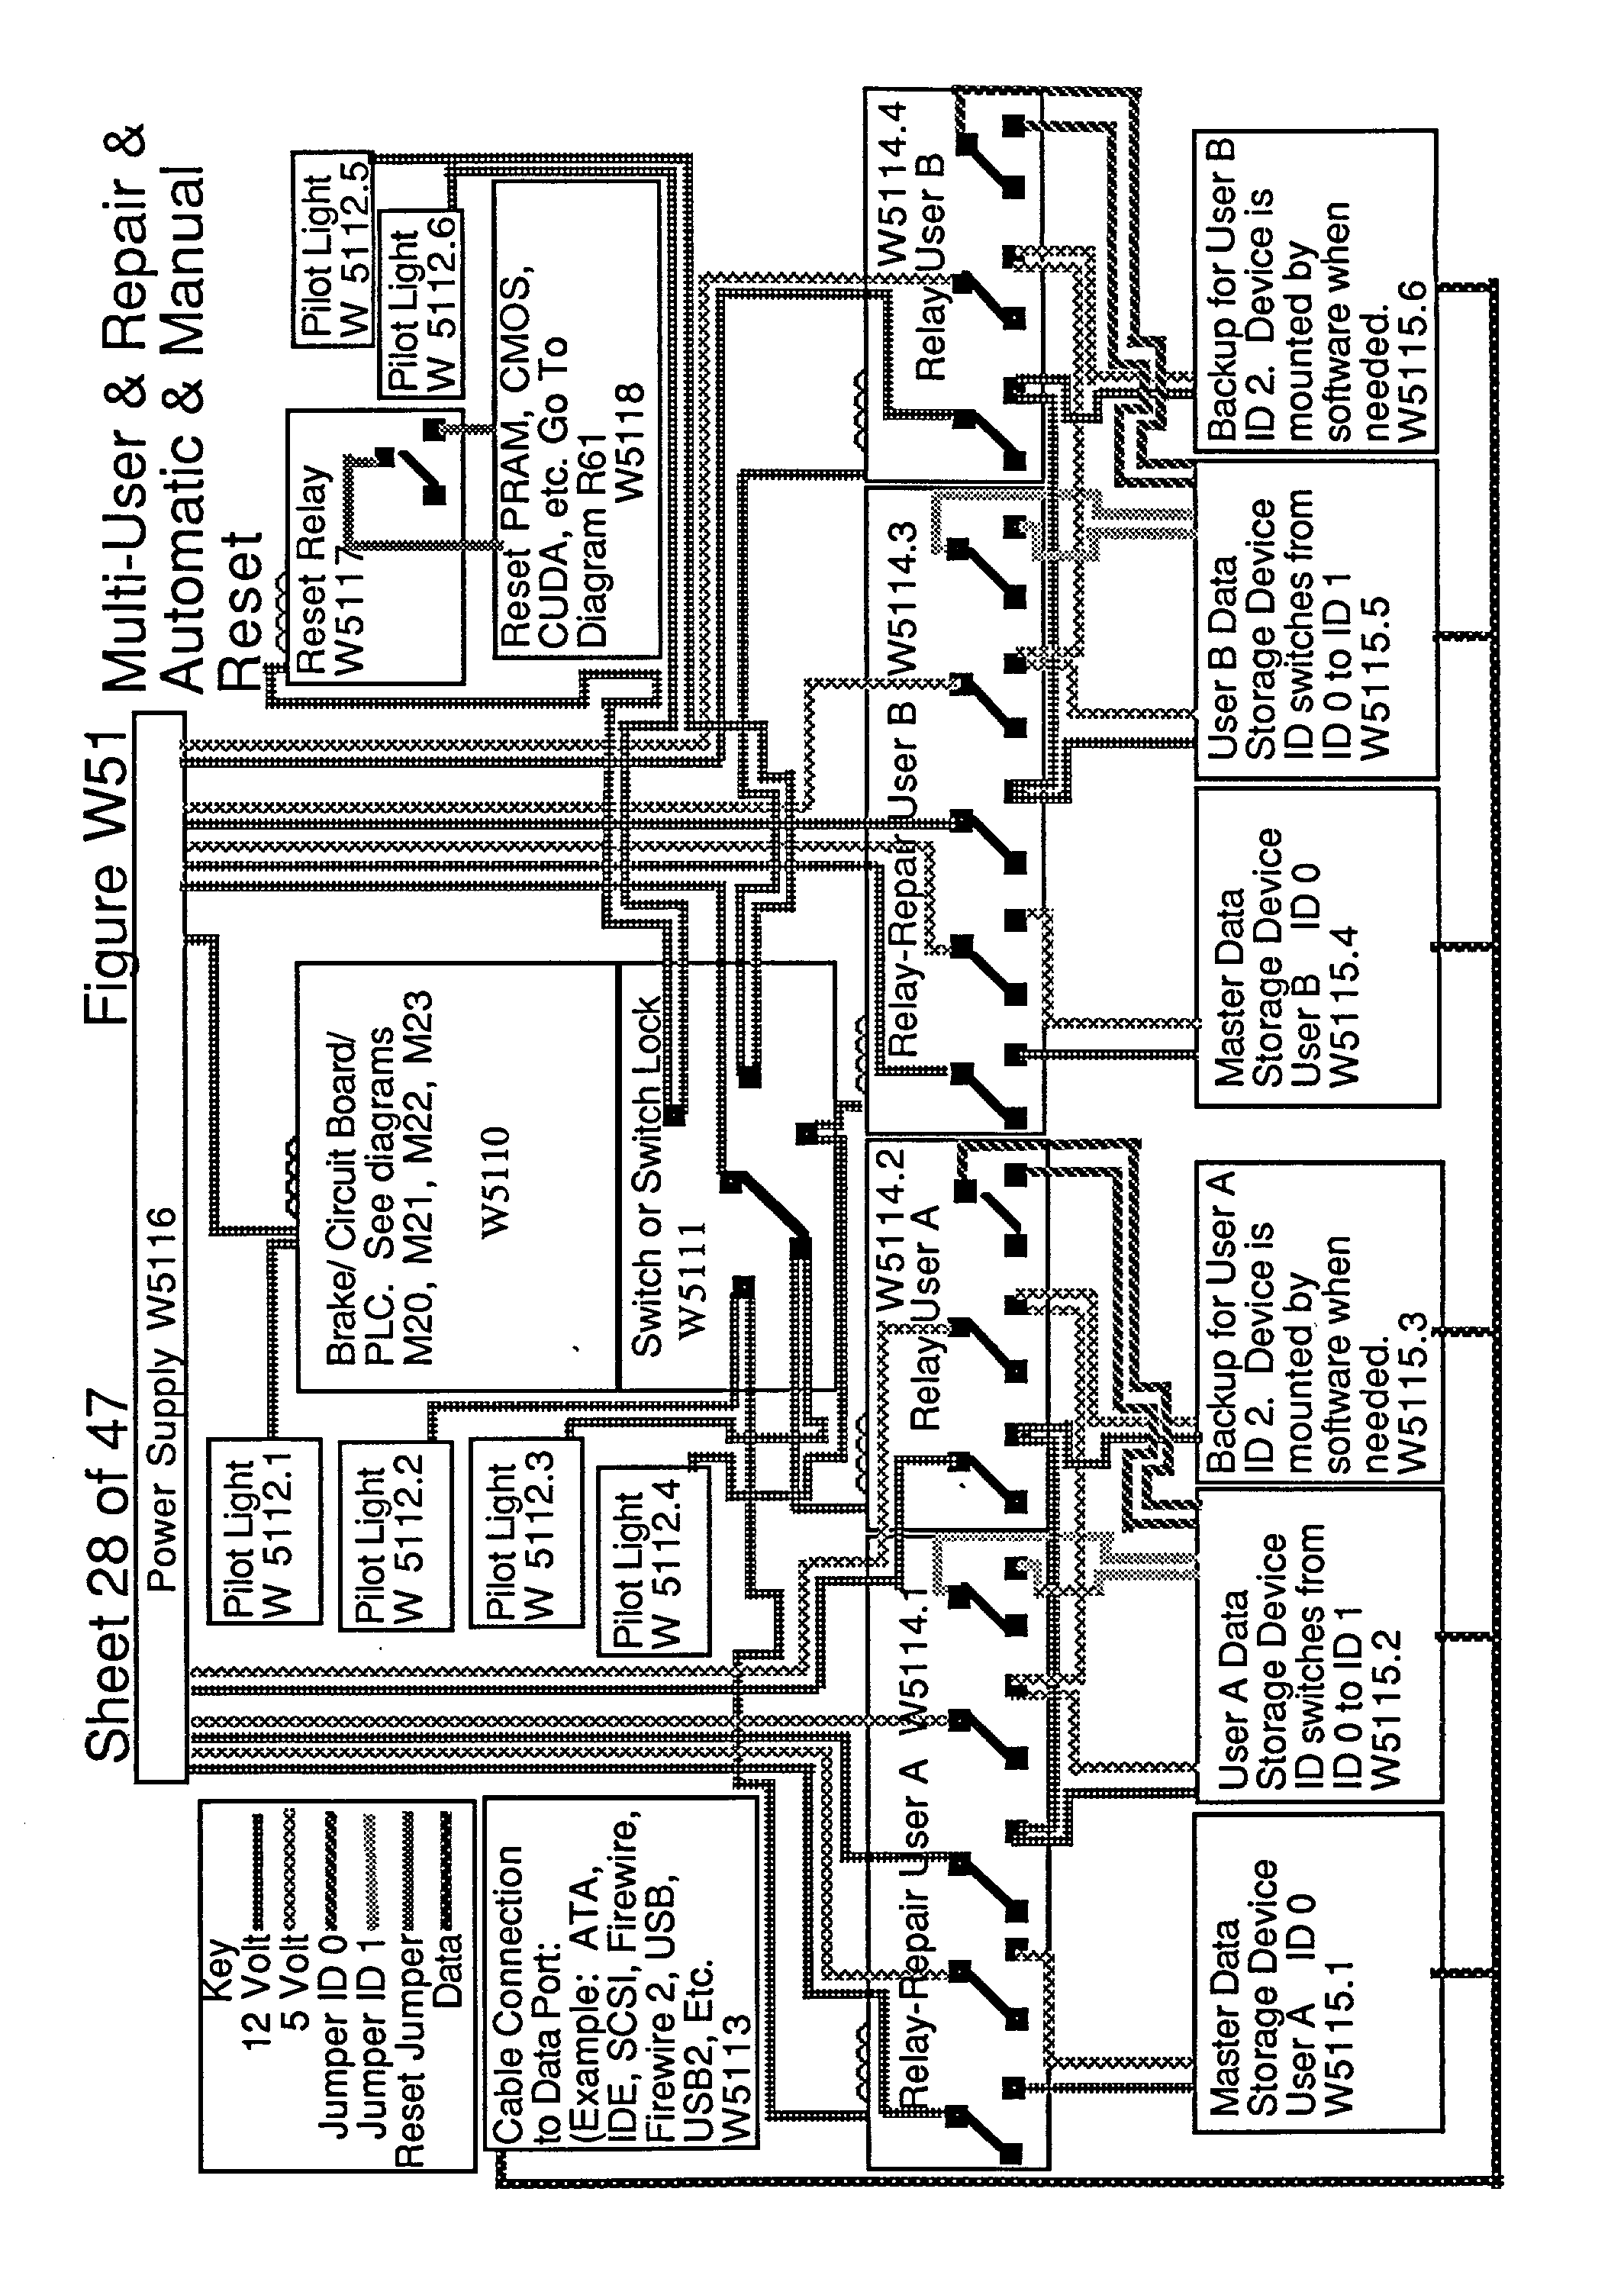 Plc Control Wiring Diagram Solutions Firewire Resume Cover Letter 2018 Typical Fresh